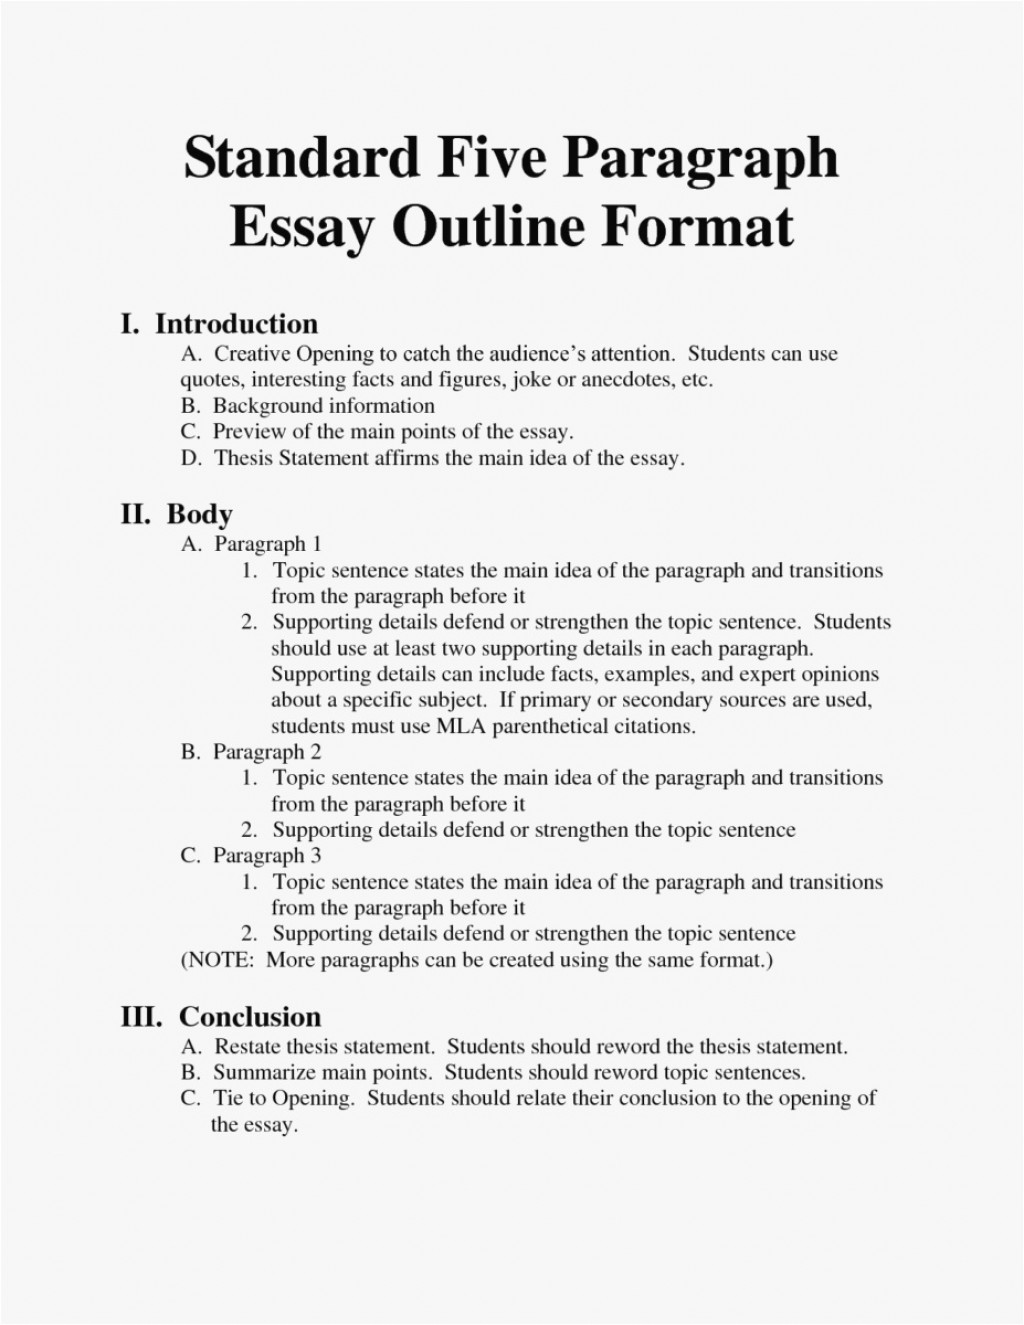 010 Best Essays Essay Example College Outline Template Picture What Is For Topics Ideas About Ever Identity Ivy League Reddit New York Times Harvard Common App Exceptional 2017 Video 2018 Of All Time Large